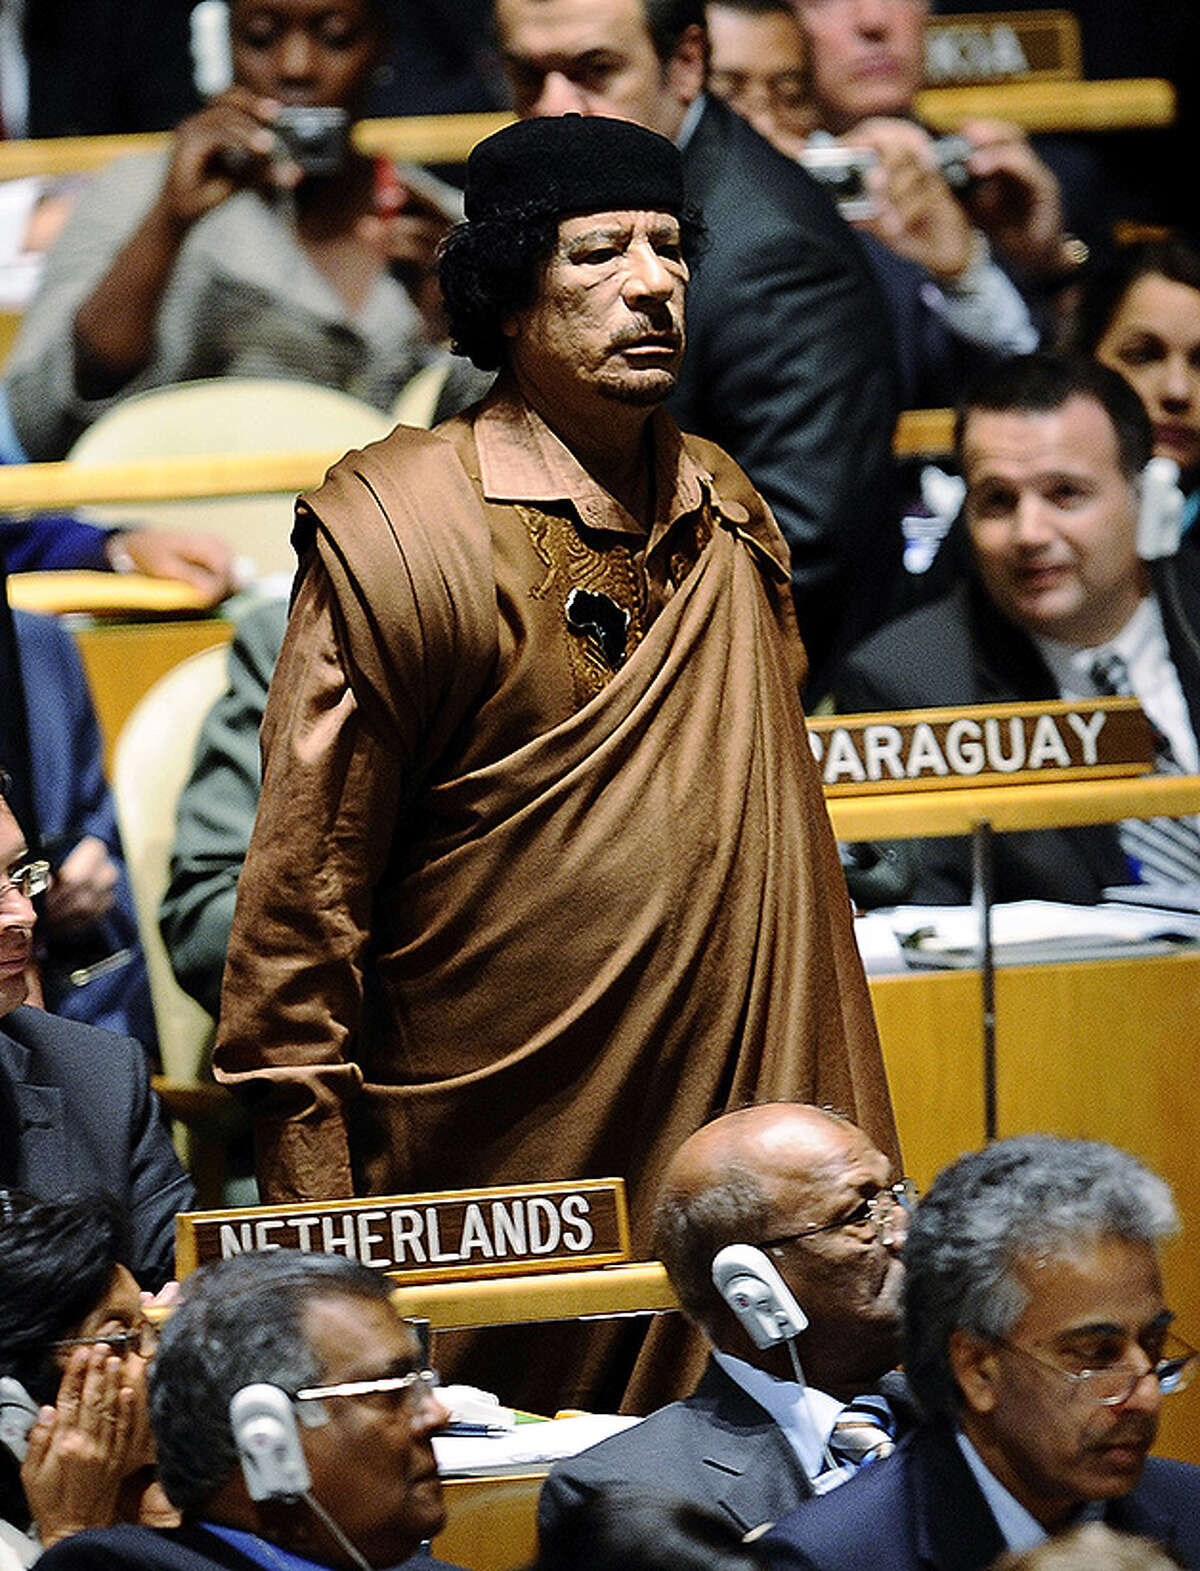 Libyan leader Colonel Moammar Gadhafi walks through the chamber at the 64th General Assembly at United Nations Headquarters on September 23, 2009 in New York City.